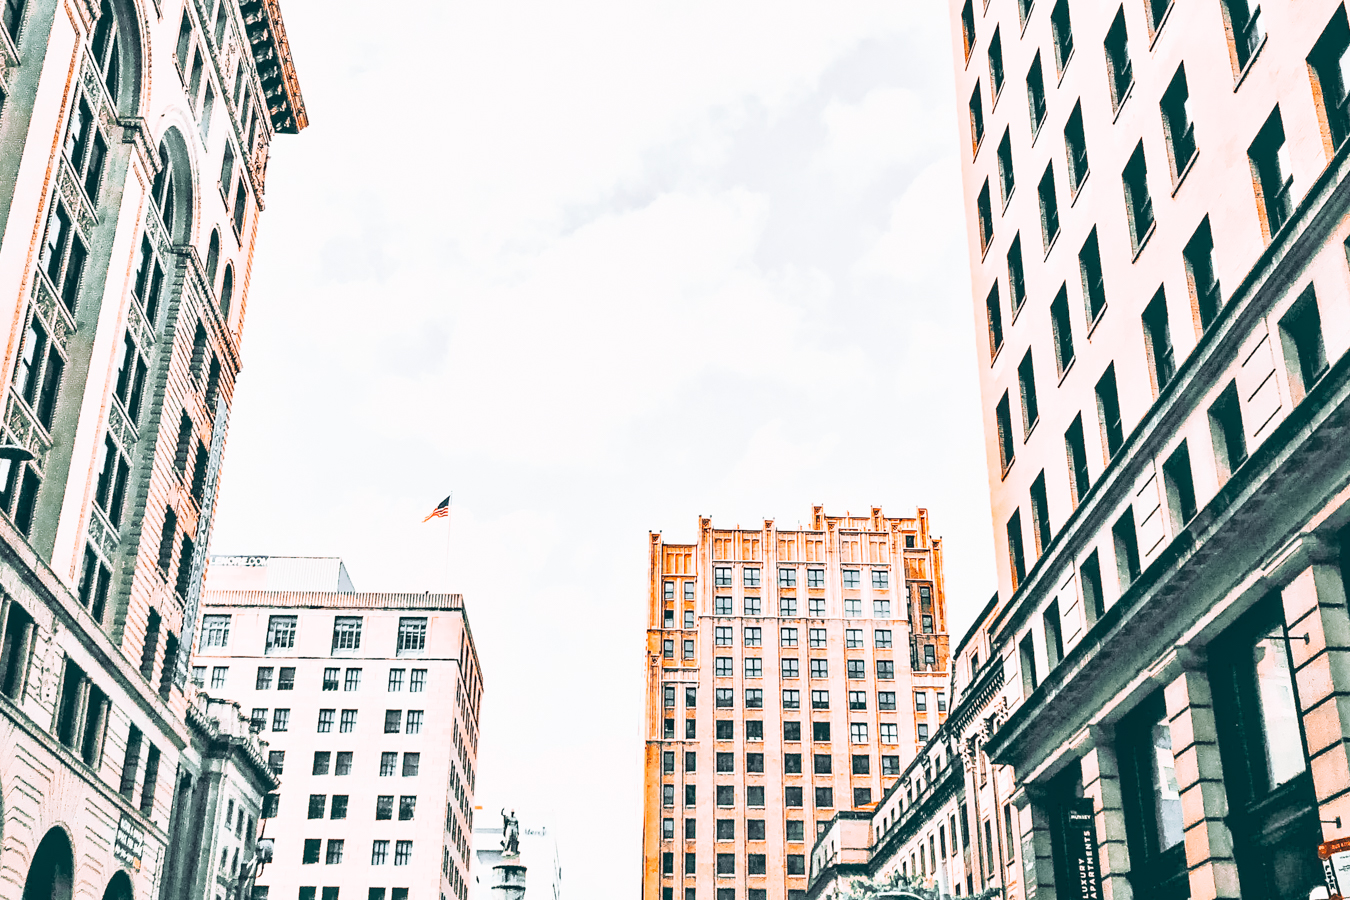 Buildings and a flag in Baltimore